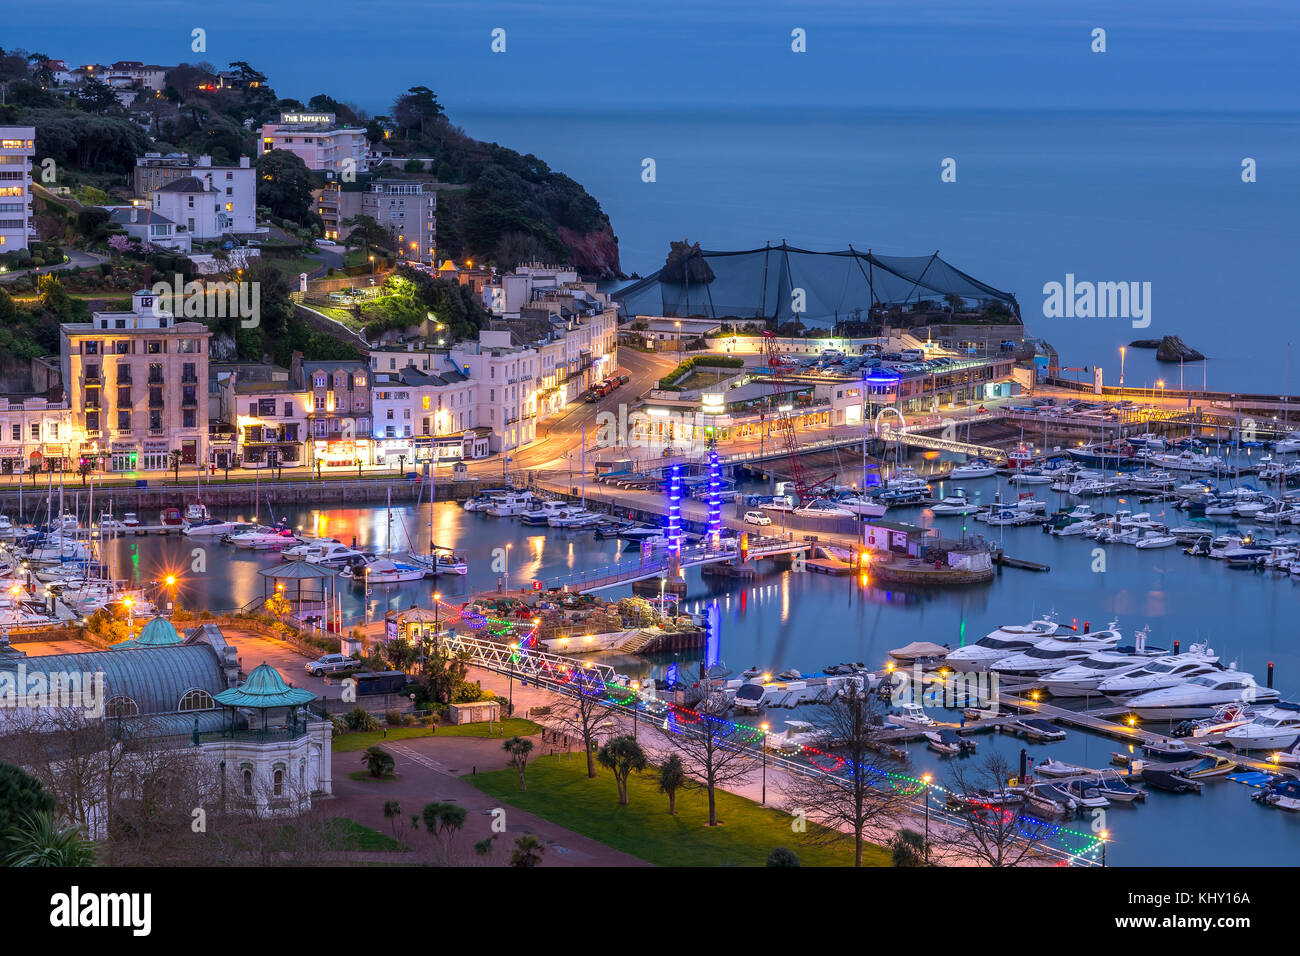 Le port de Torquay par nuit Photo Stock